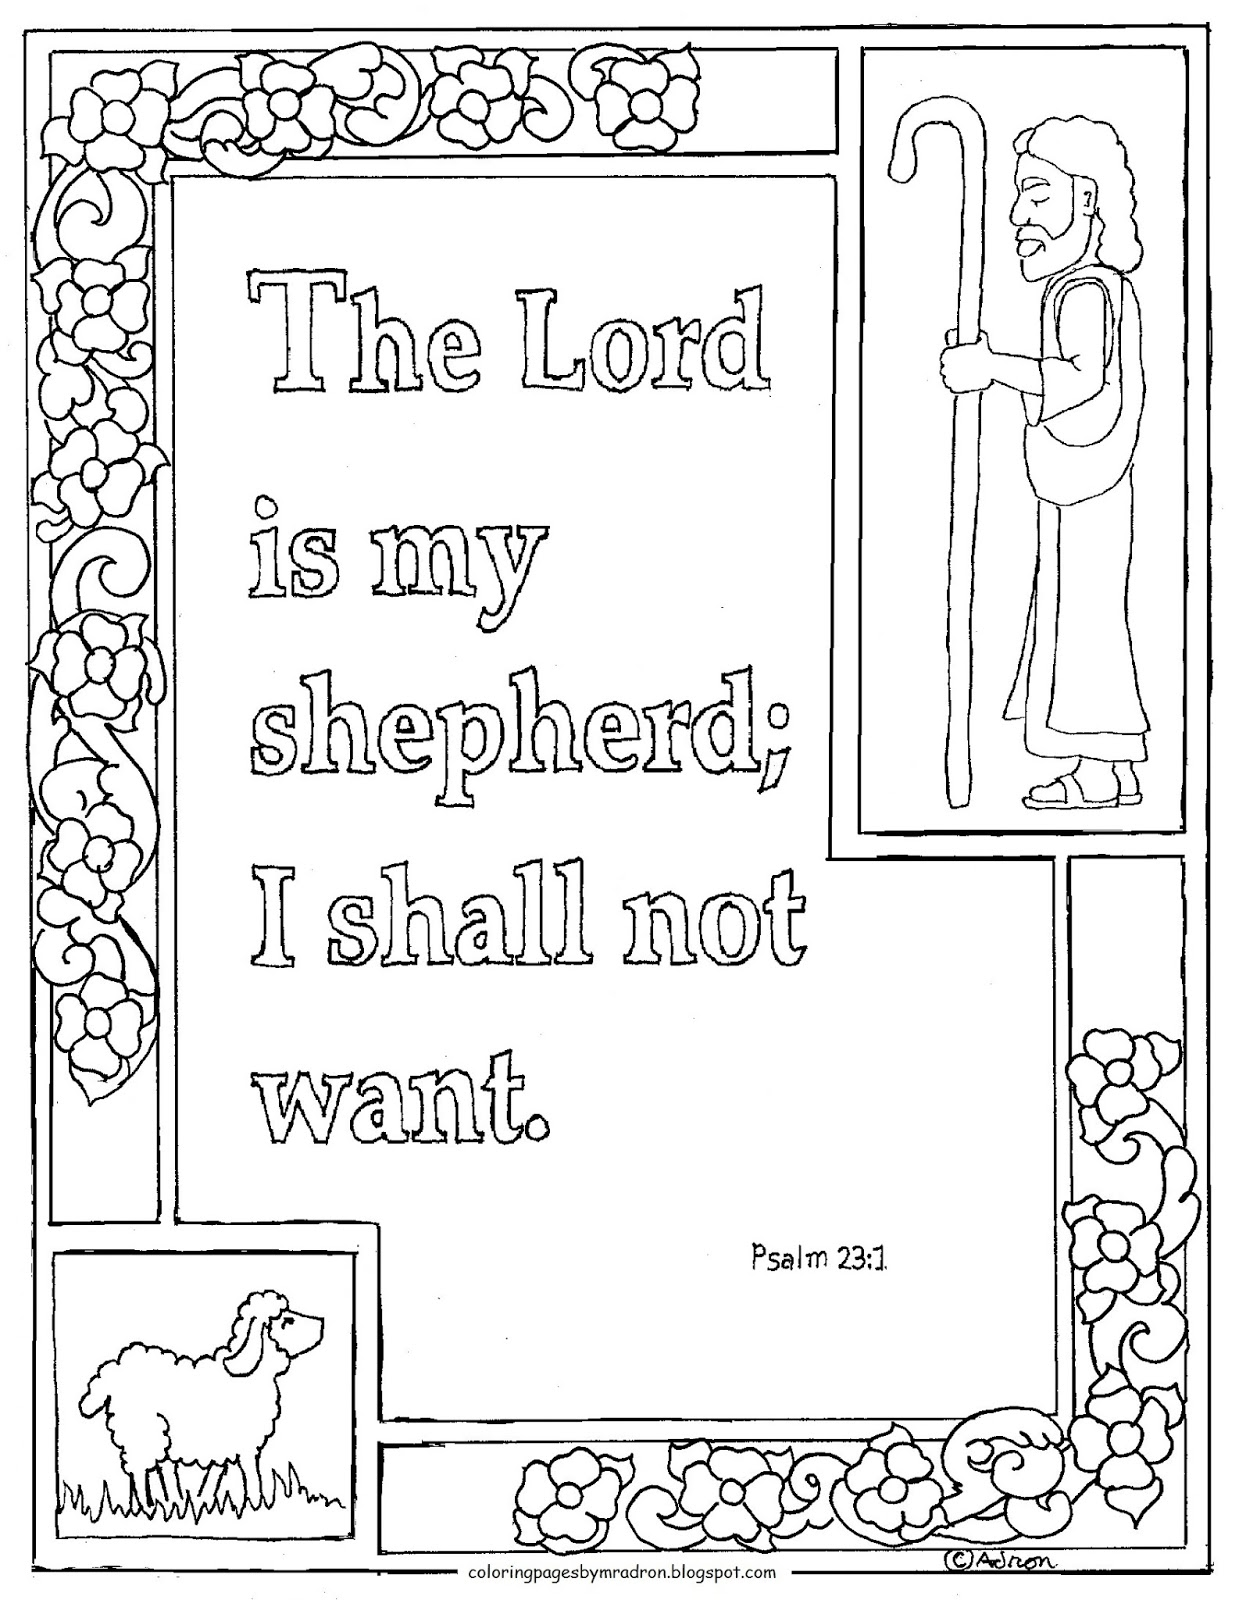 god is my shepherd coloring pages | Coloring Pages for Kids by Mr. Adron: Printable Psalm 23:1 ...